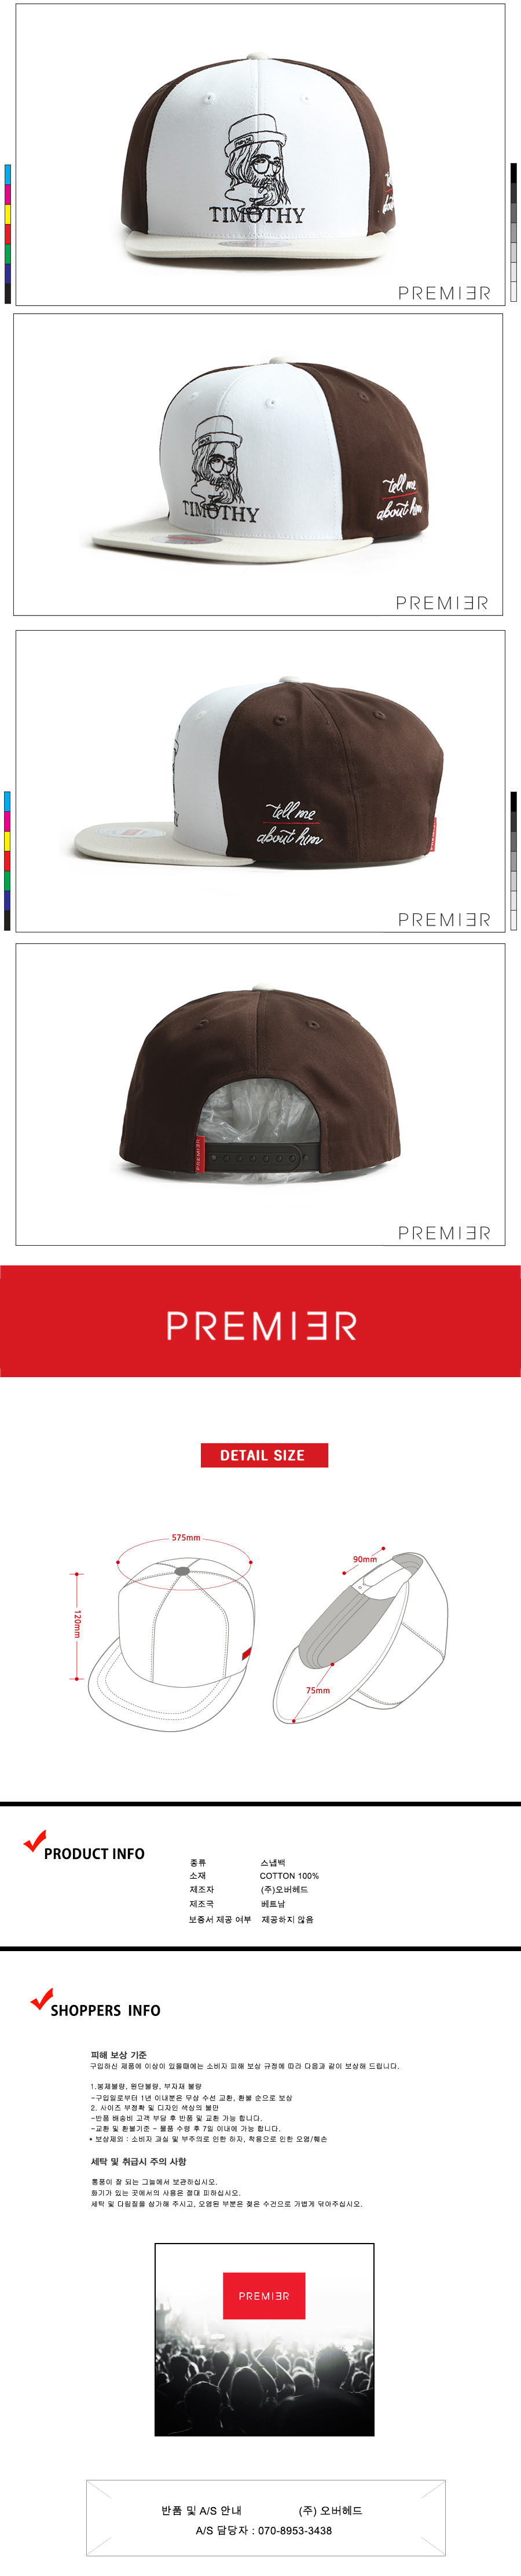 [ PREMIER ] [Premier] Snapback Timothy Brown/Cream (P888)